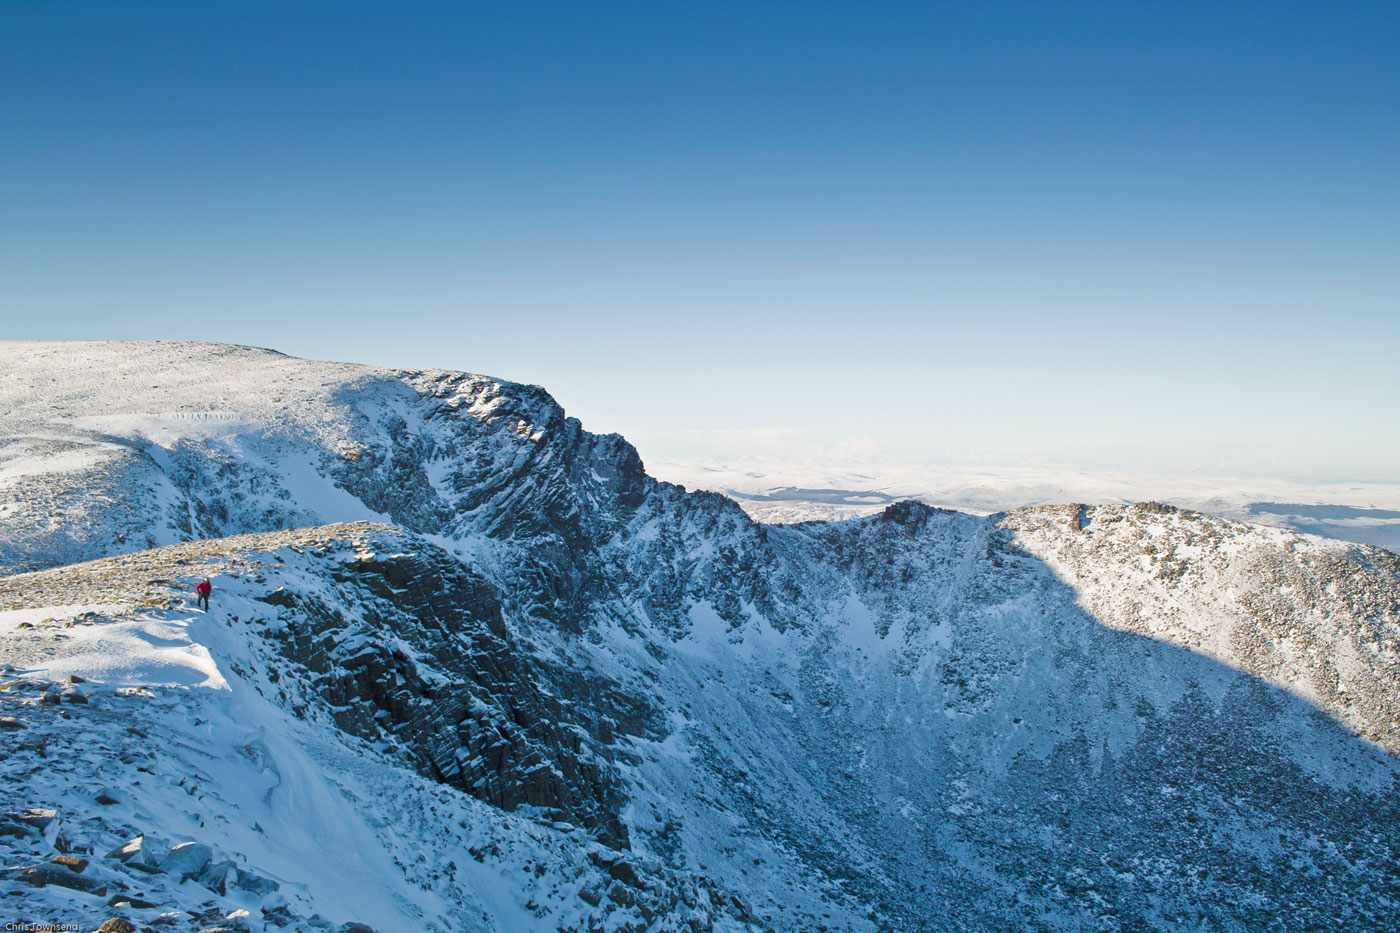 A-mountaineer-at-the-top-of-the-cliffs-of-Coire-an-t-Sneachda-with-Cairn-Lochan-in-the-background_2-b08c049